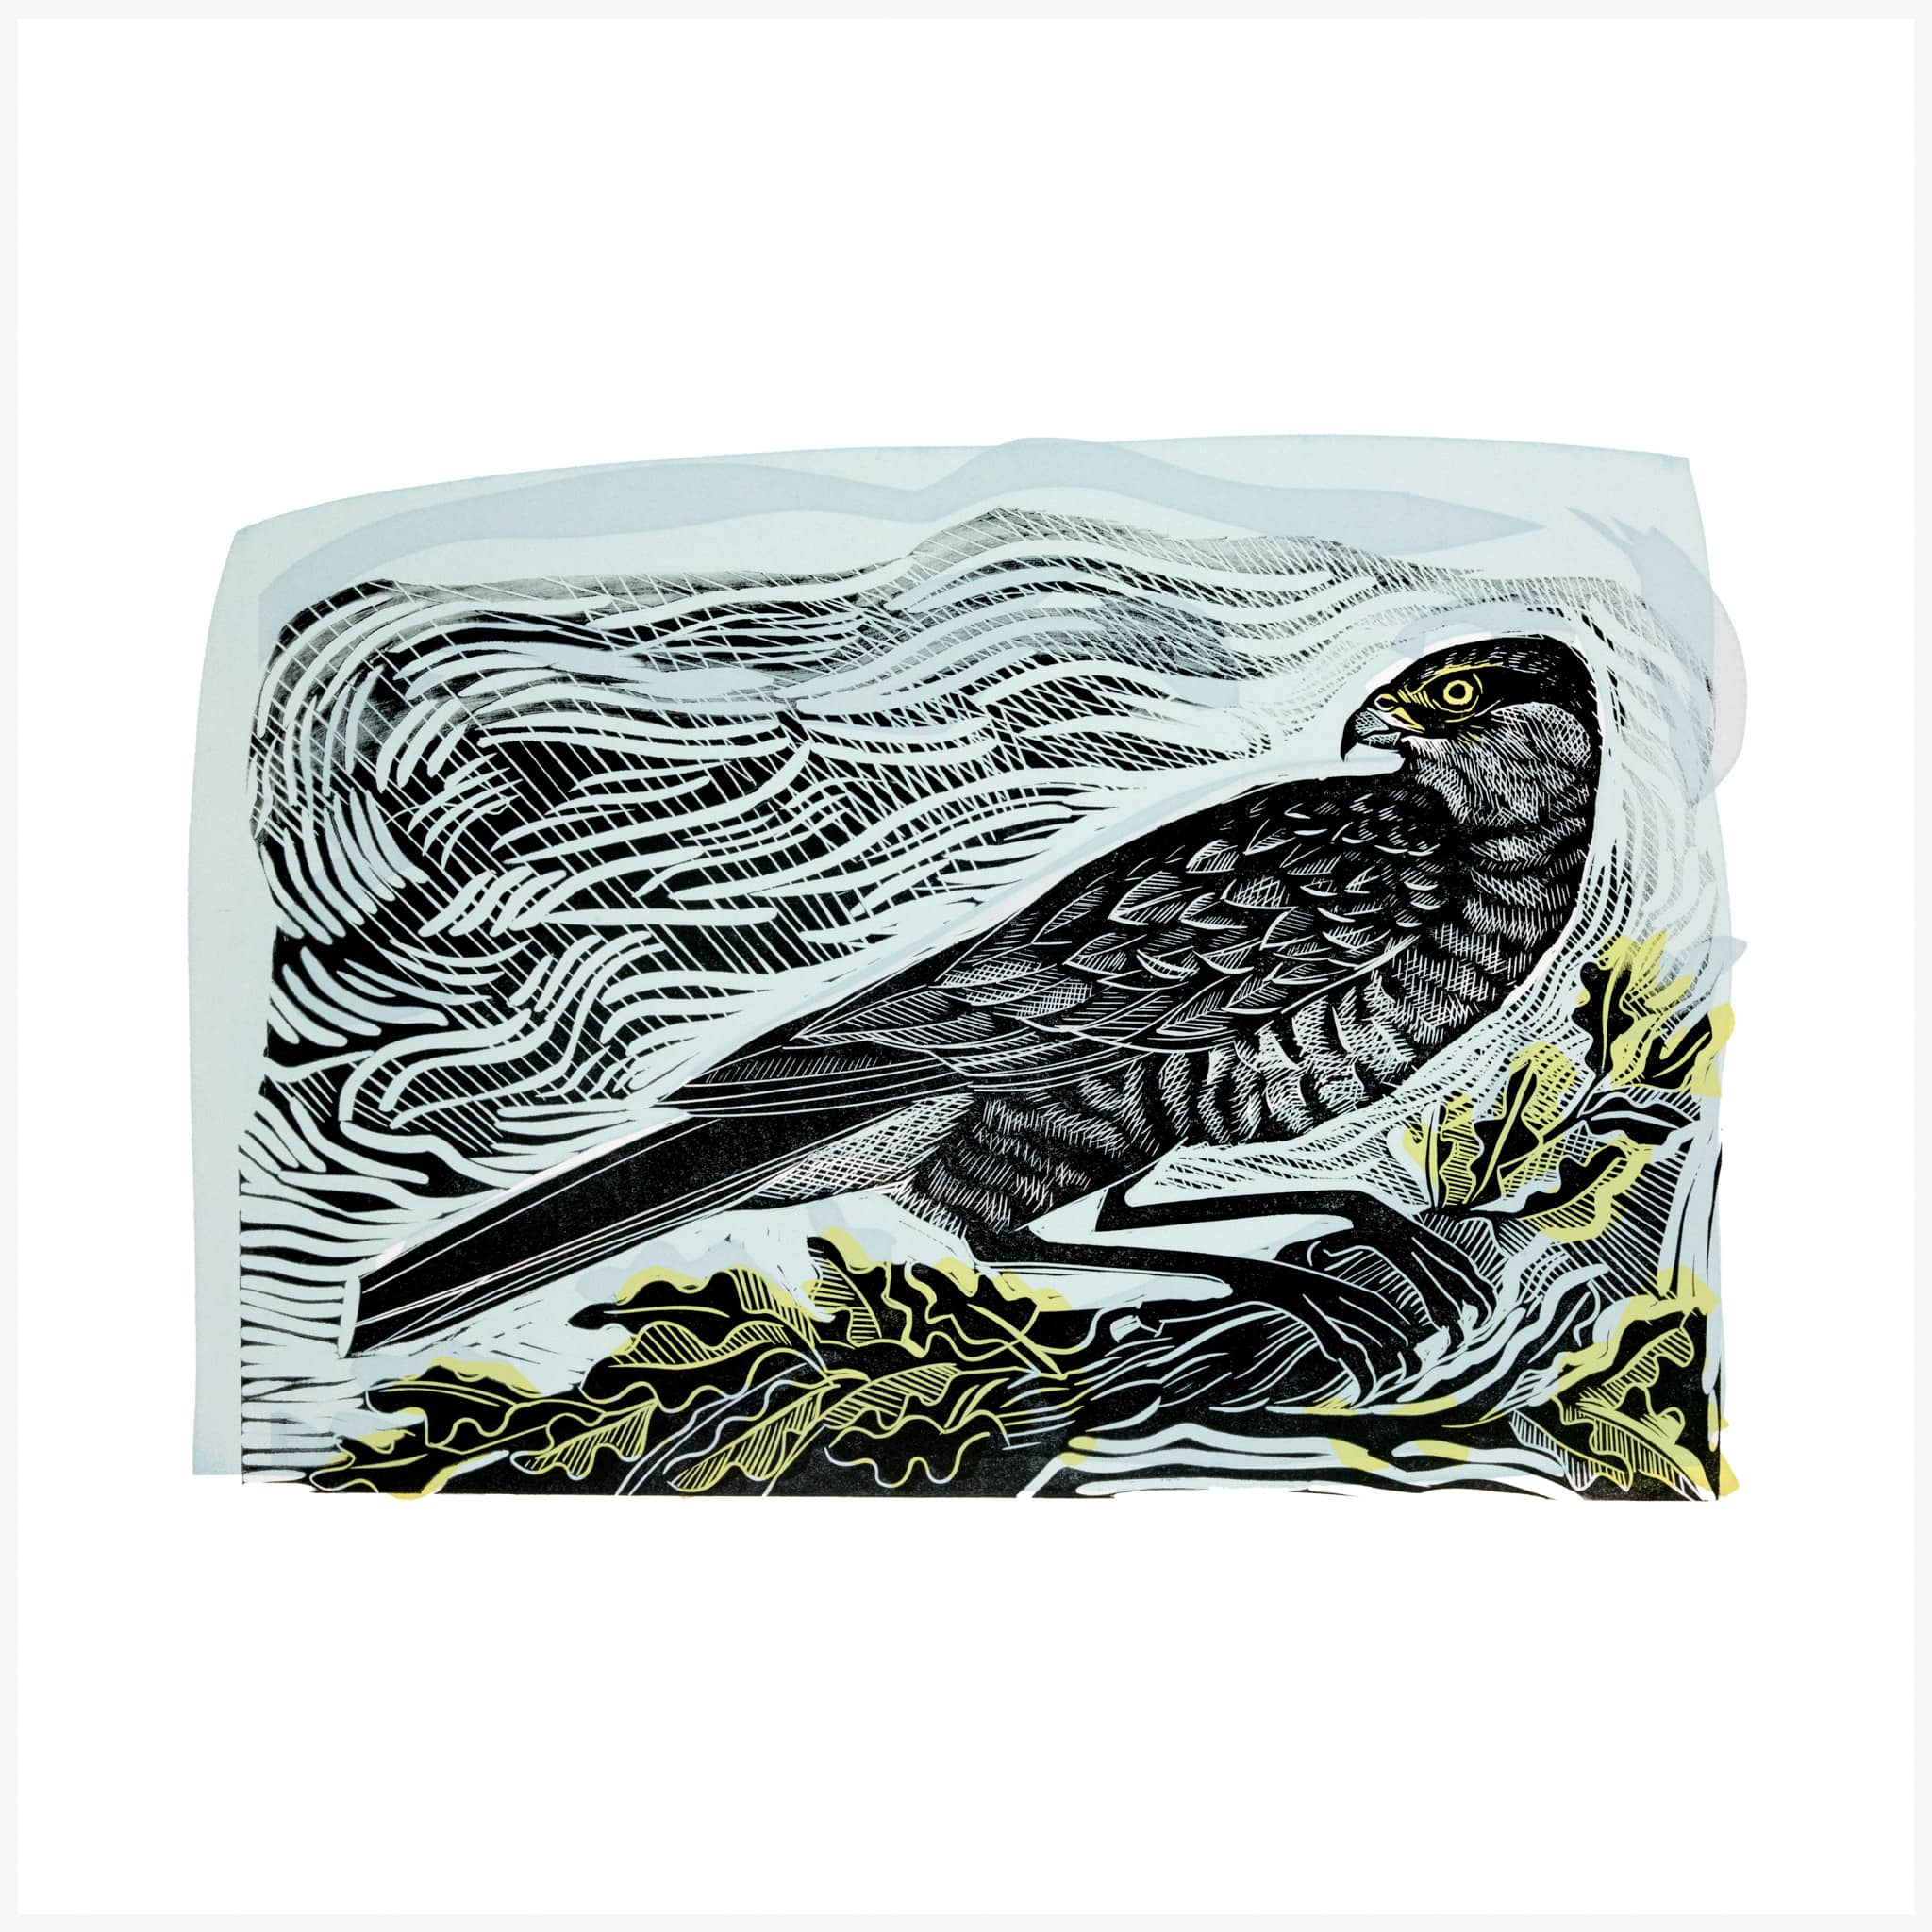 Sparrow Hawk, a linocut and silkscreen print by Angela Harding